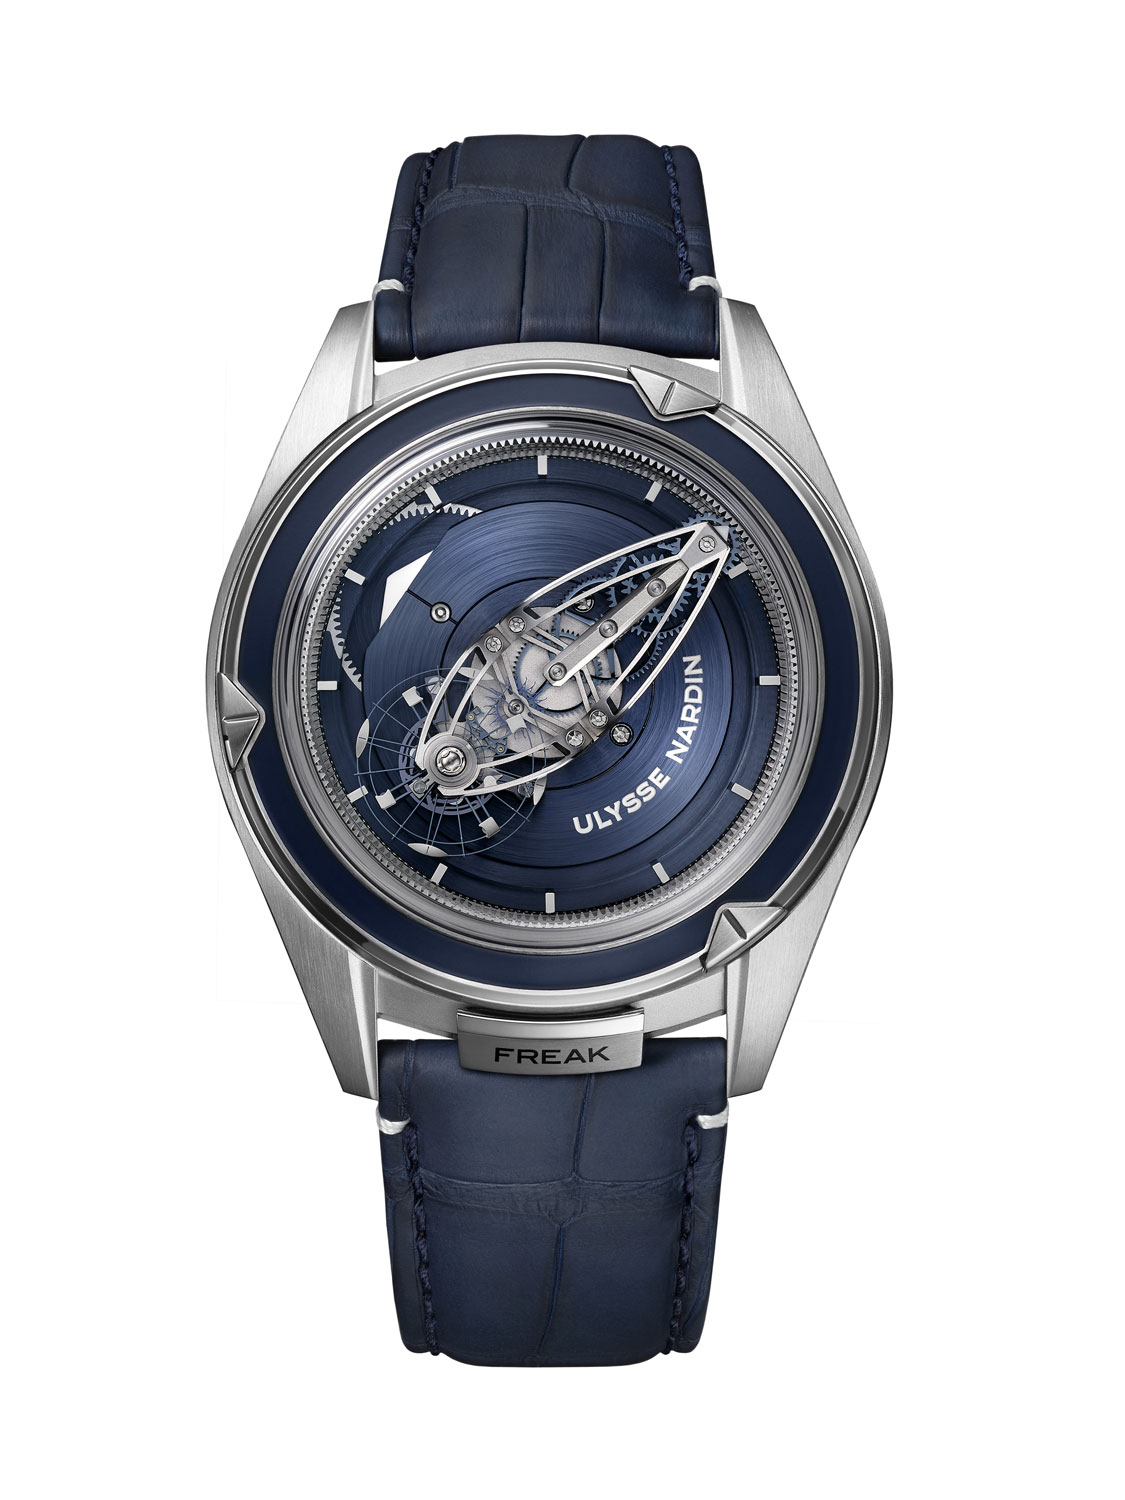 The_Ink_Collective_Creative_Content_Design_Agency_Paris_Sydney_Luxury_Editorial_Kering_Ulysse_Nardin_CEO_Patrick_Pruniaux_CEO_Interview_Luxury_Watches_Timepieces_Swiss_Manufacture_Freak_Out_9.jpg